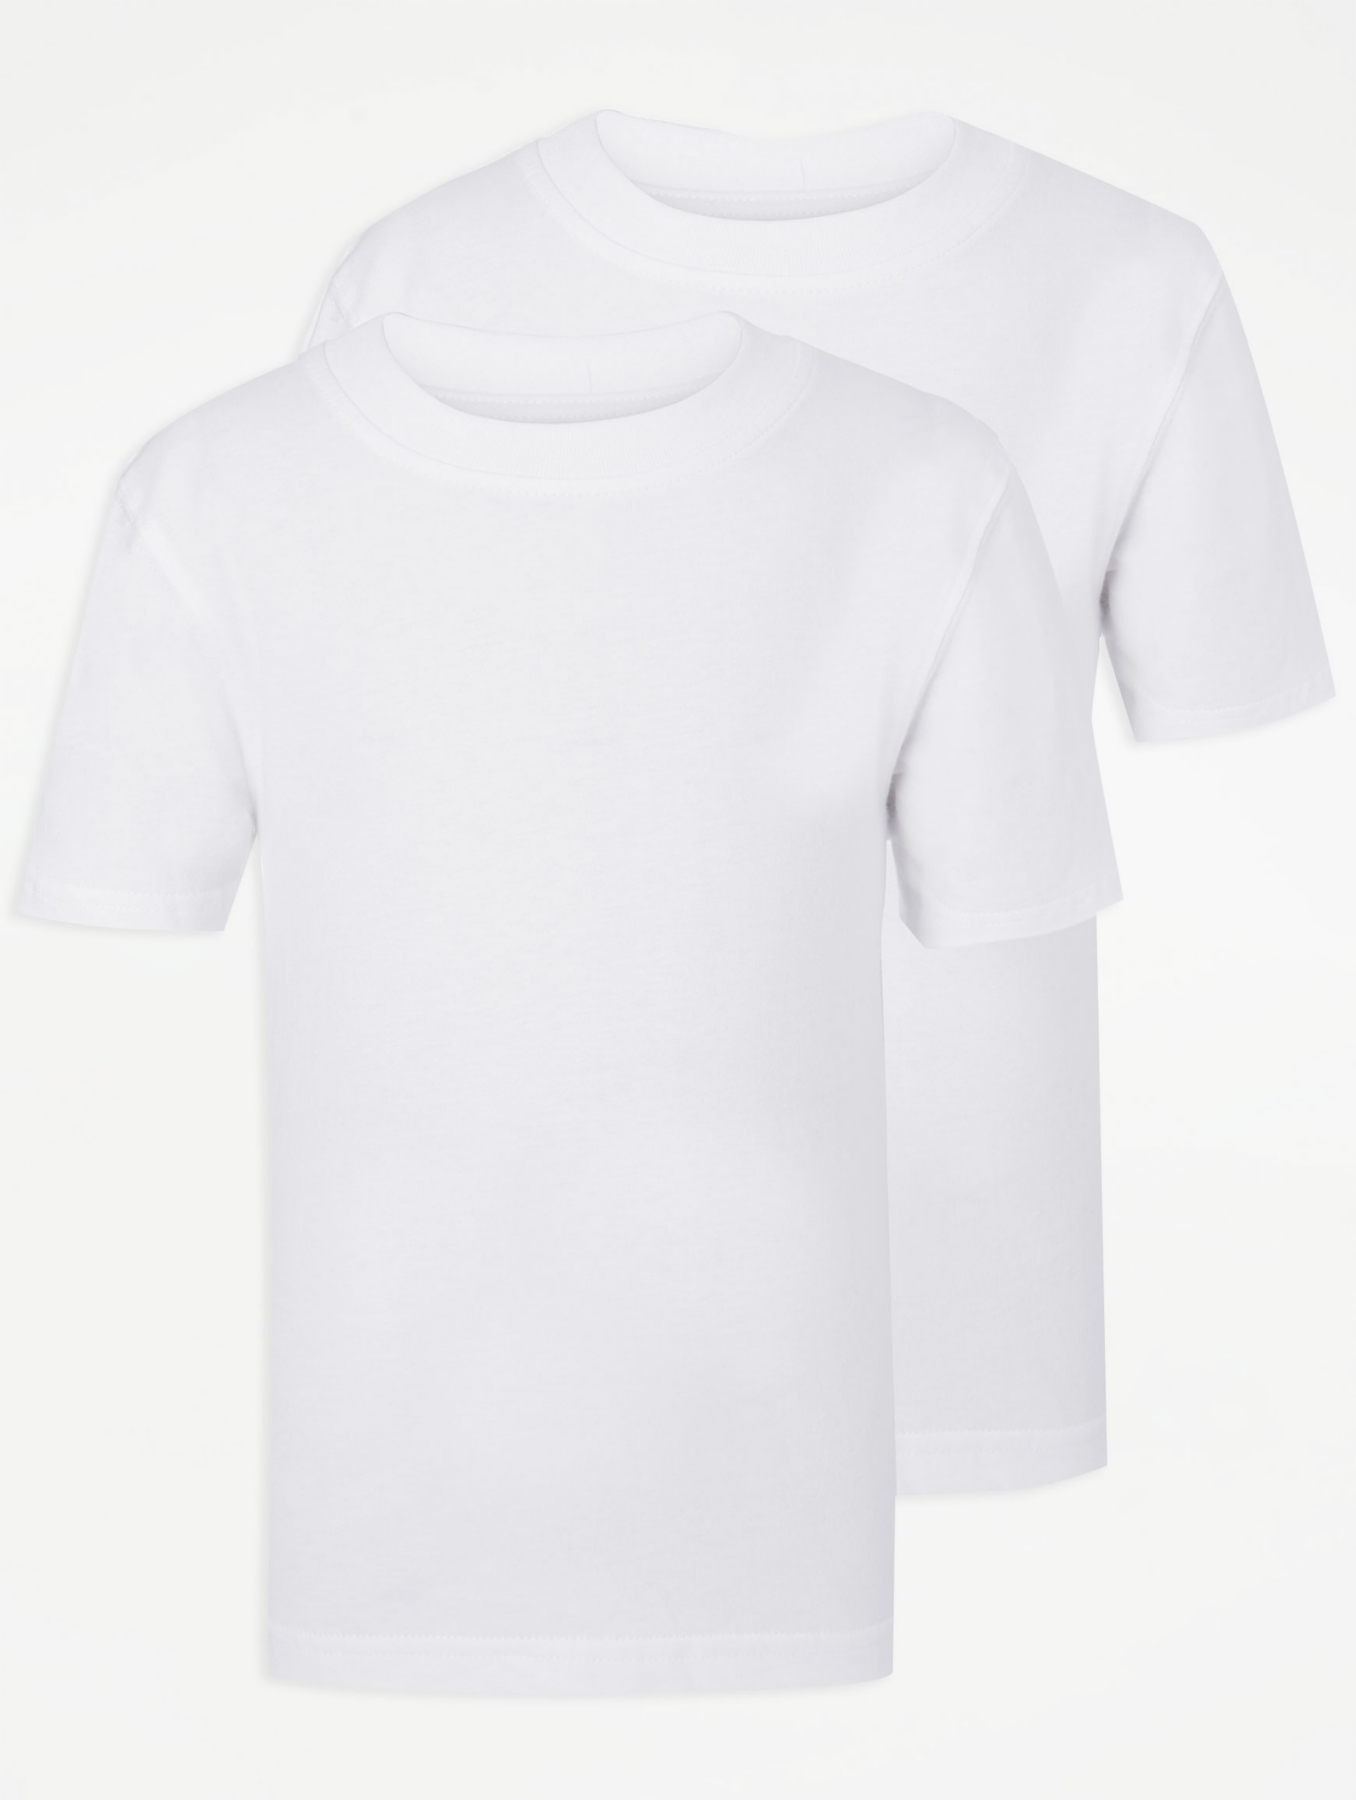 White Jersey Round Neck T-Shirt - 10 / WHITE I Saw It First